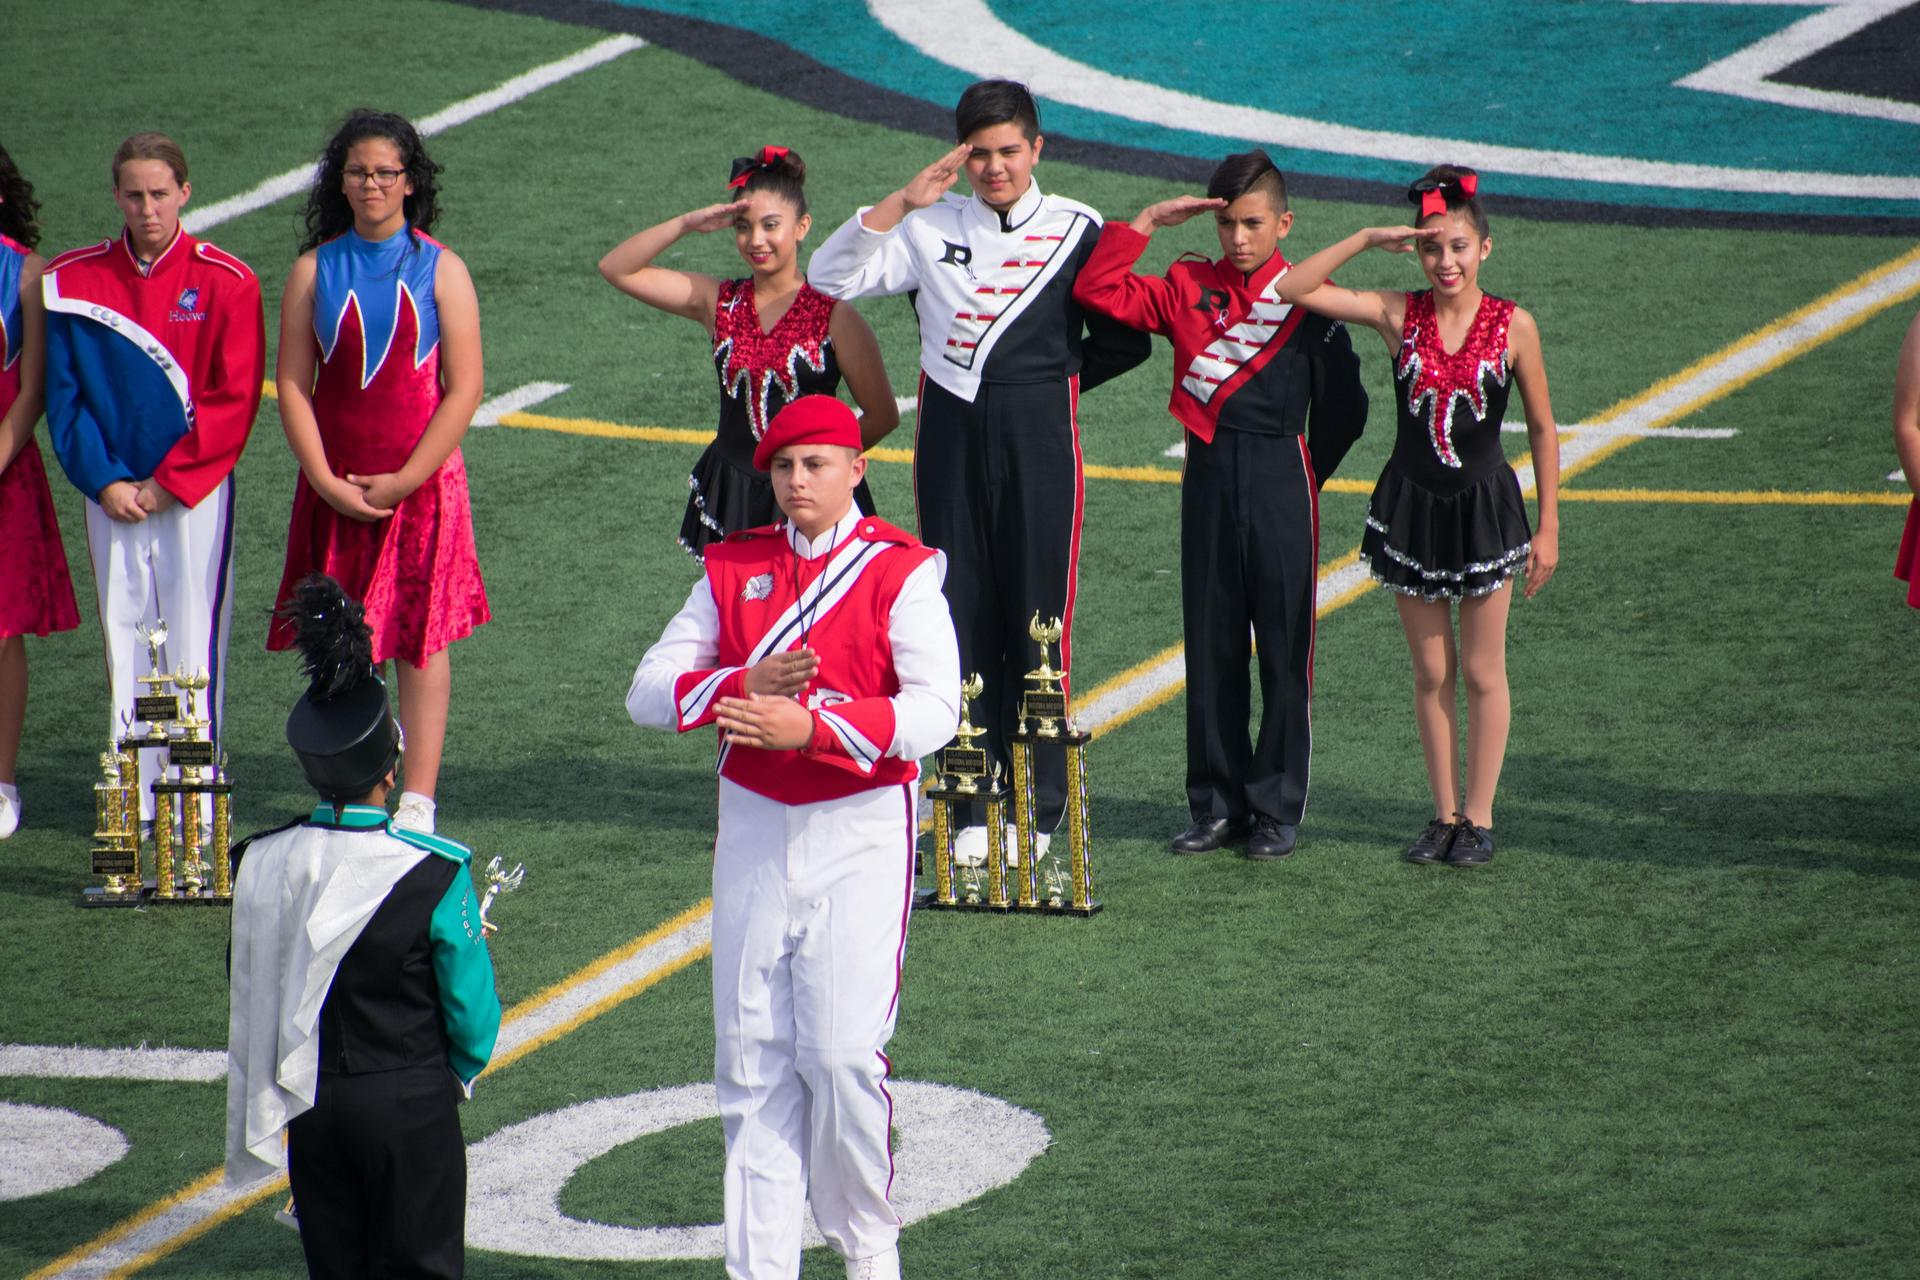 Band Review in Orange Cove